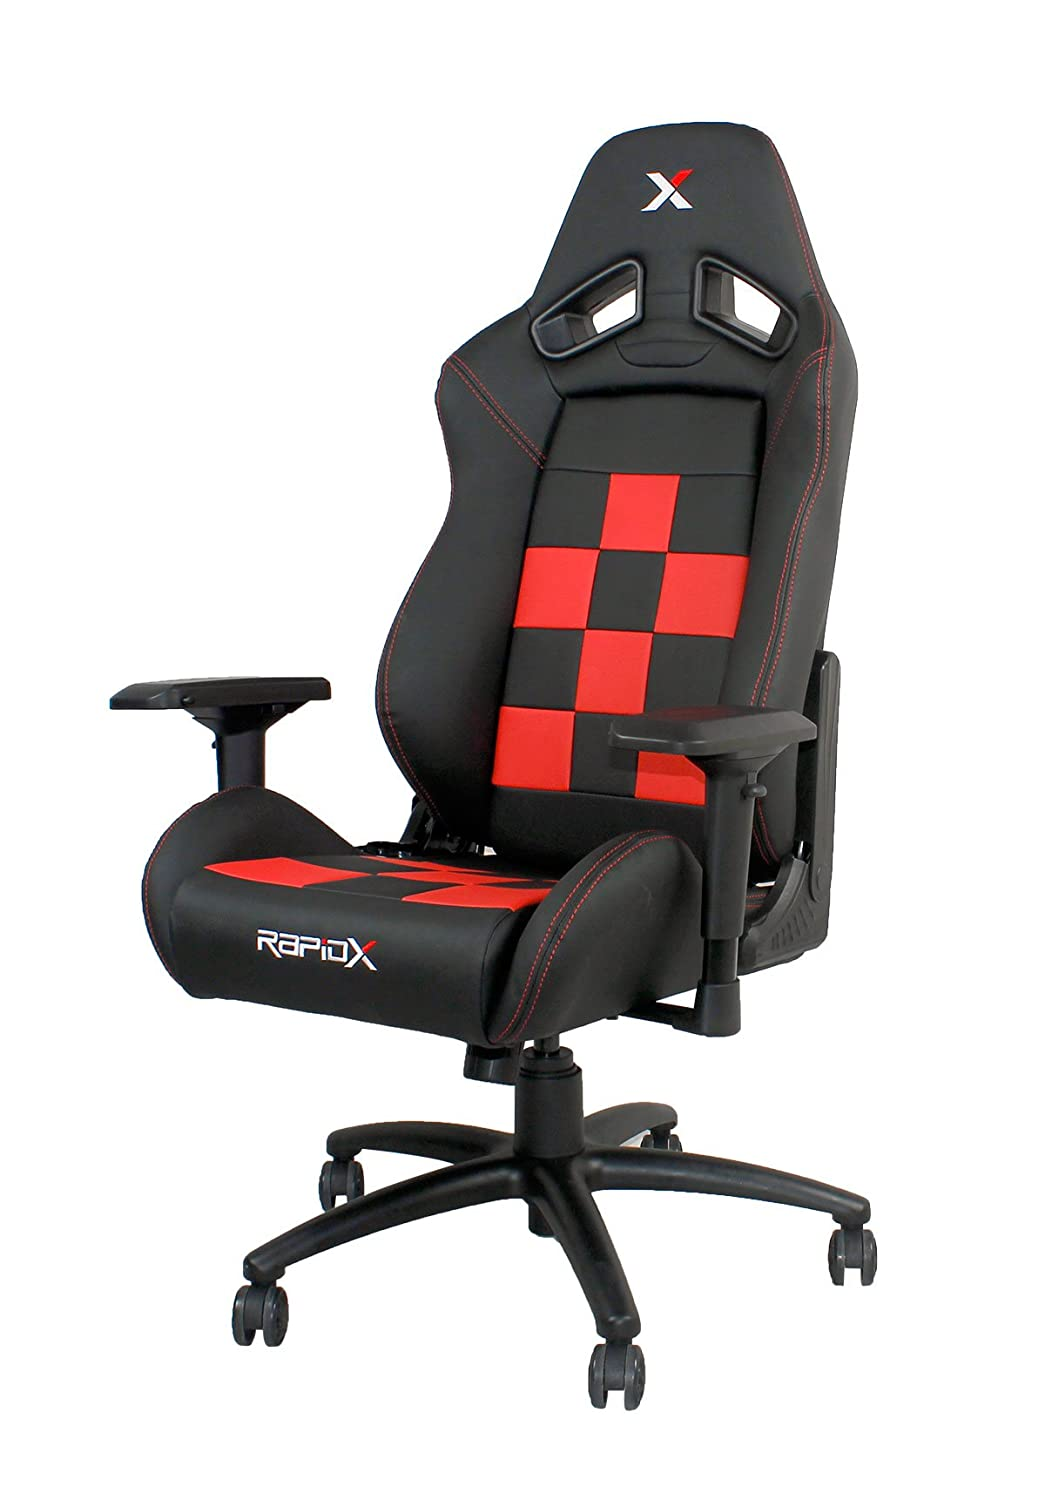 ebf2dbd739e52 Amazon.com  Finish Line Red on Black Checkered Flag Pattern Gaming and  Lifestyle Chair by RapidX  not machine specific  Video Games